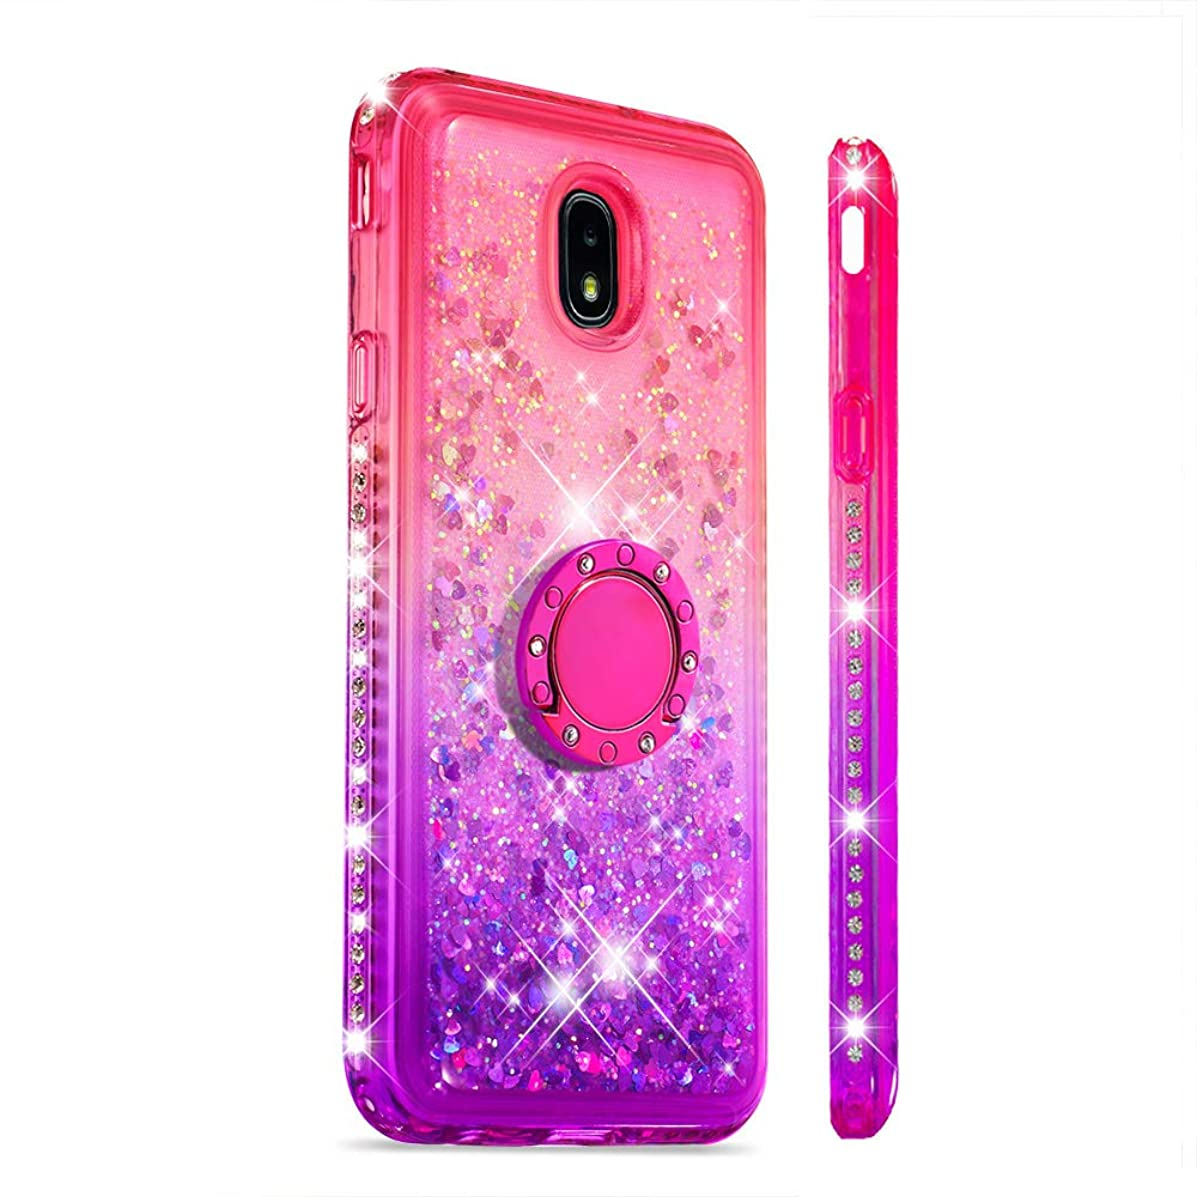 Galaxy J7 2018 Case, J7 V 2nd/J7 Refine/J7 Star/J7 Aero/J7 Crown/J7 Top/J7 Aura Case, Rosepark Glitter Bling Diamond Flowing Liquid Quicksand TPU Gradient Case with Ring Holder (Gradient Pink/Purple)